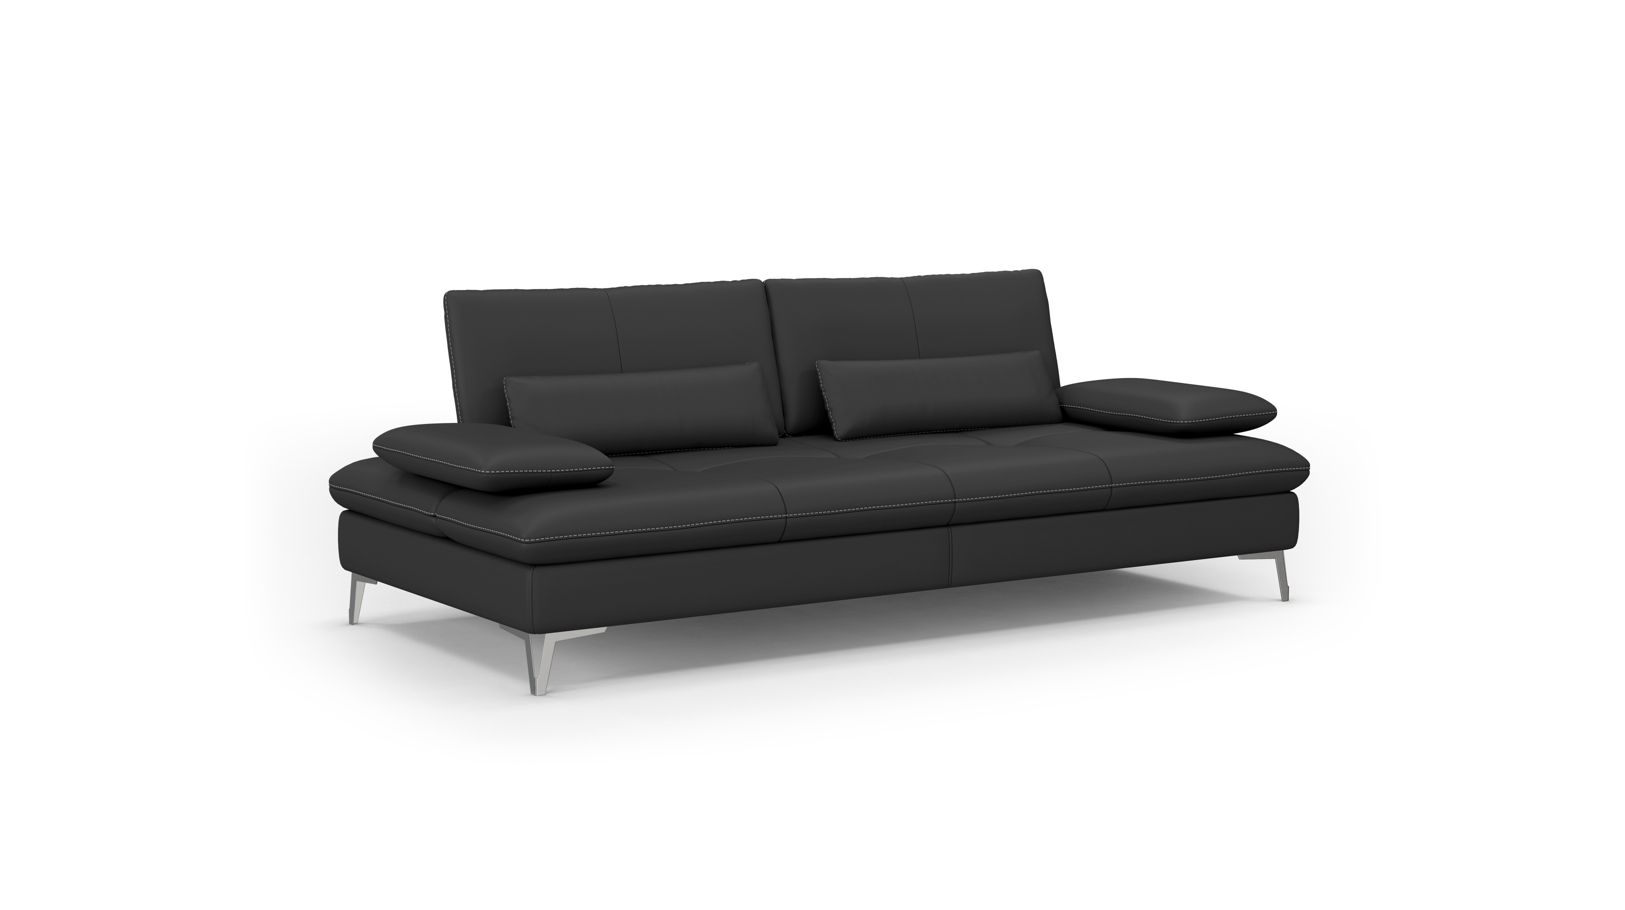 gro es 3 sitzer sofa scenario roche bobois. Black Bedroom Furniture Sets. Home Design Ideas